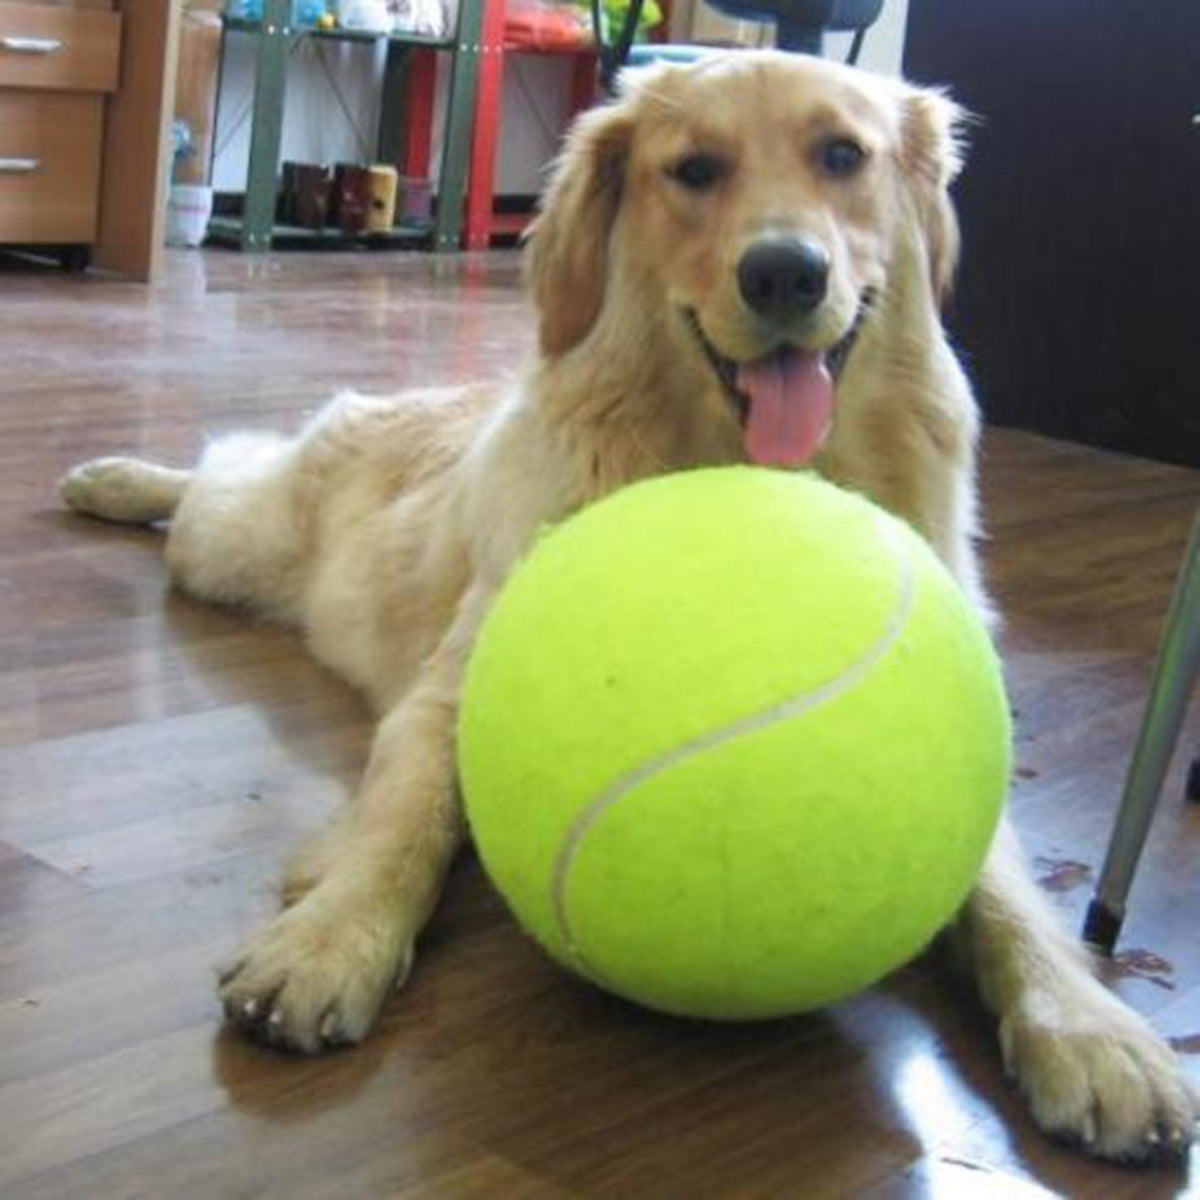 9.5 Inches Dog Tennis Ball for Training